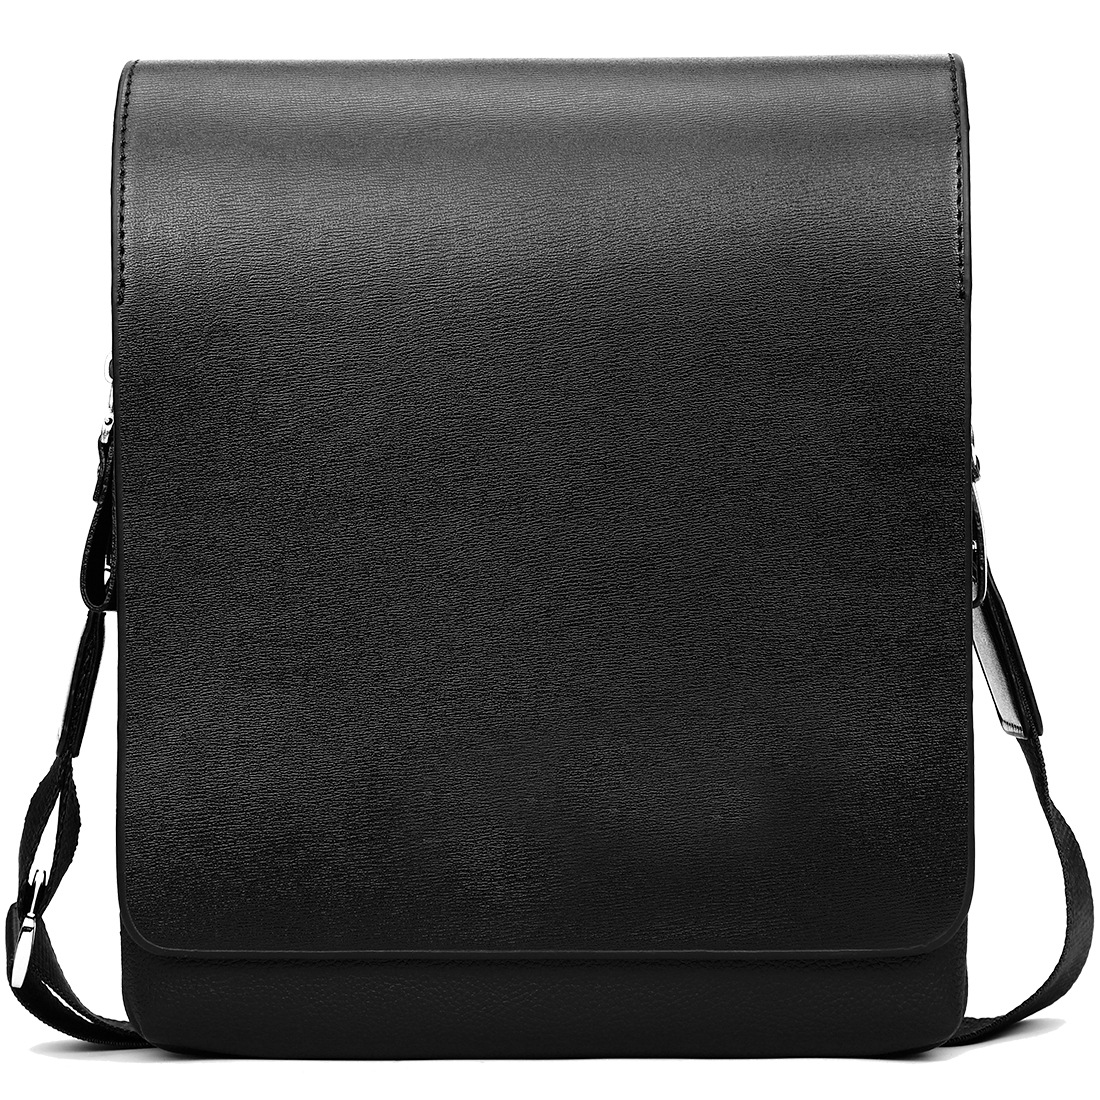 2019 New Leisure Business Shoulder Bag Large Capacity Wear-resistant Multifunctional Fashion Soft Leather Men's Briefcase